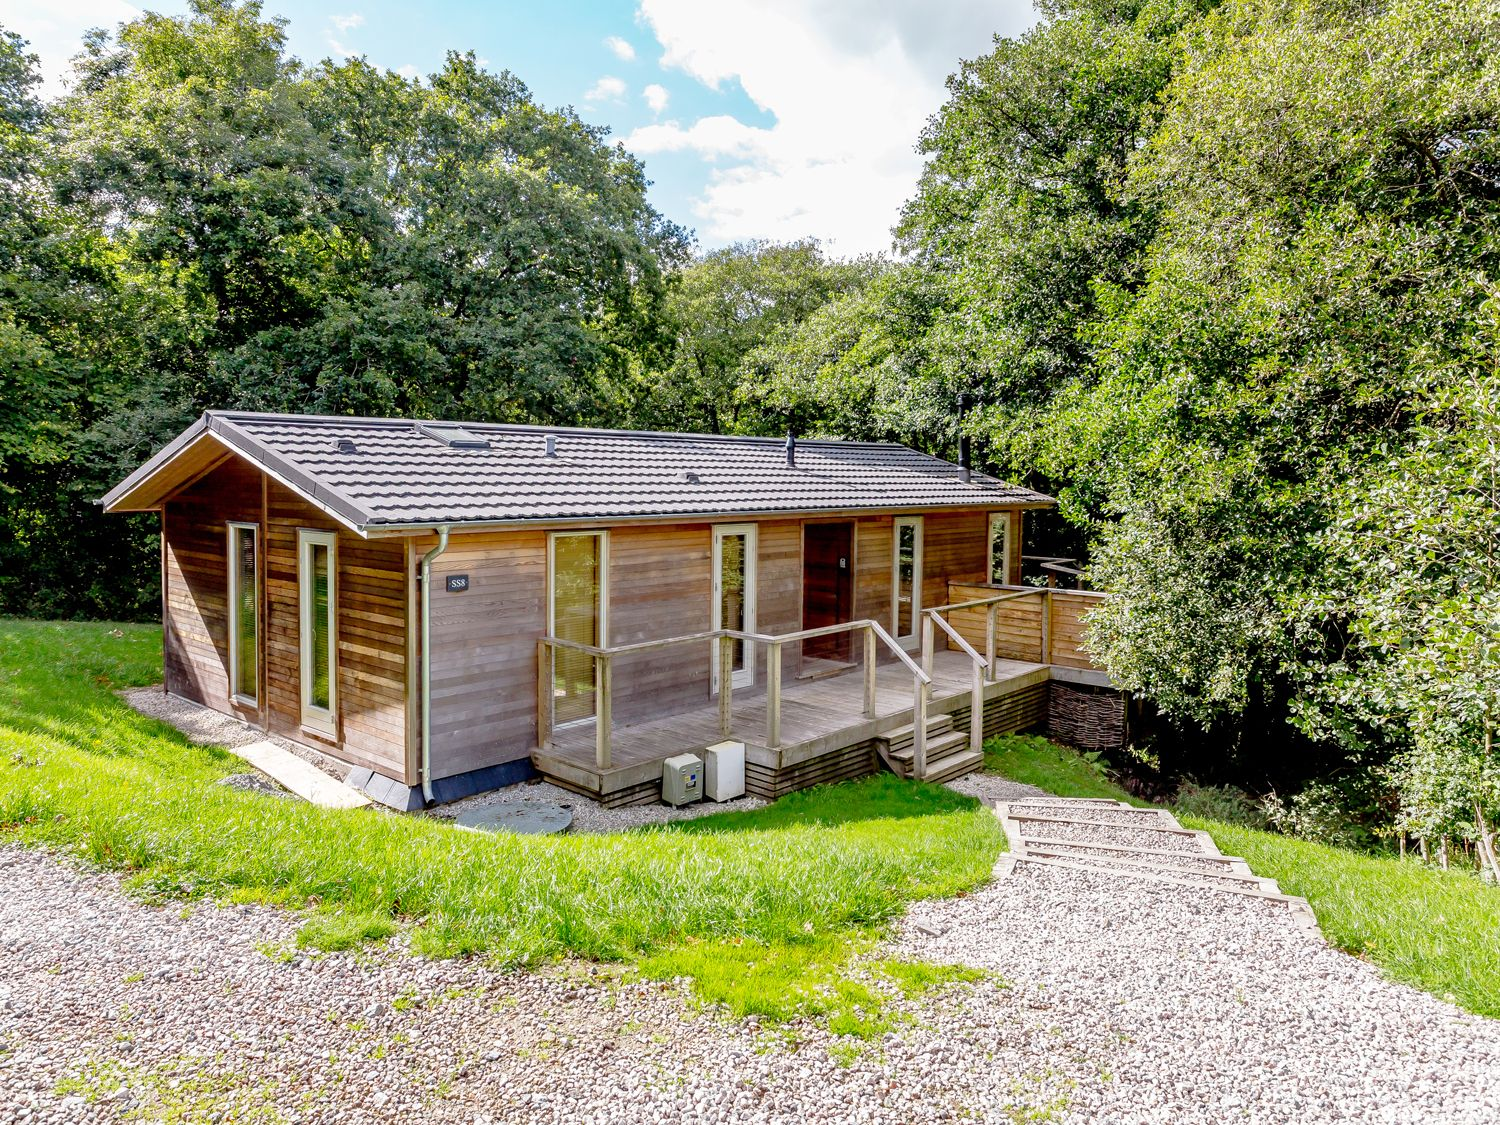 8 Streamside - Cornwall - 991439 - photo 1